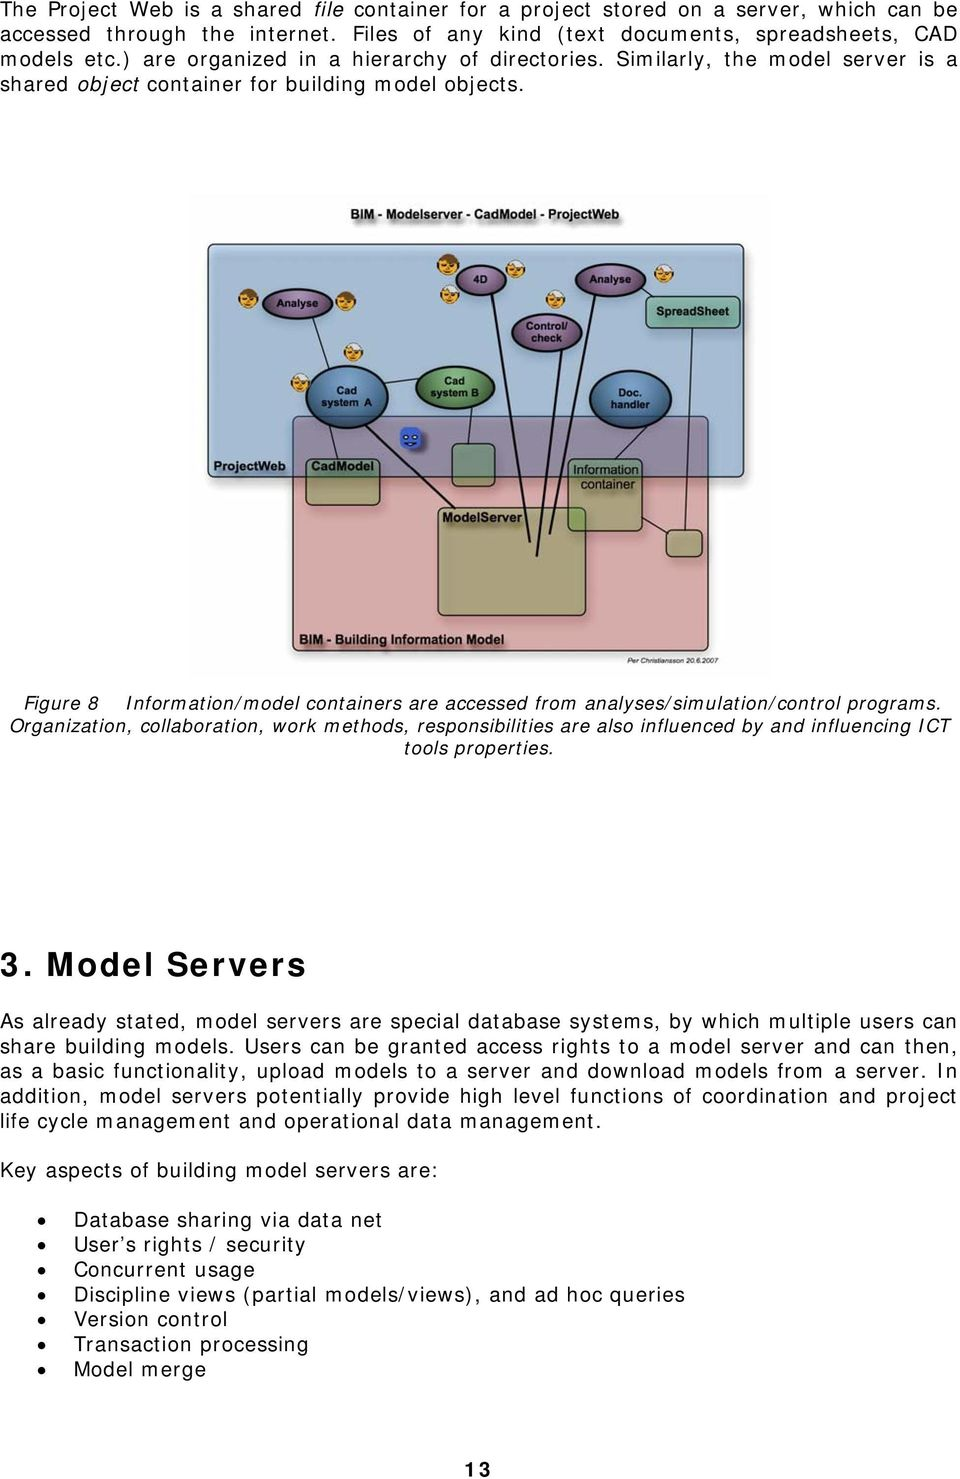 Figure 8 Information/model containers are accessed from analyses/simulation/control programs.